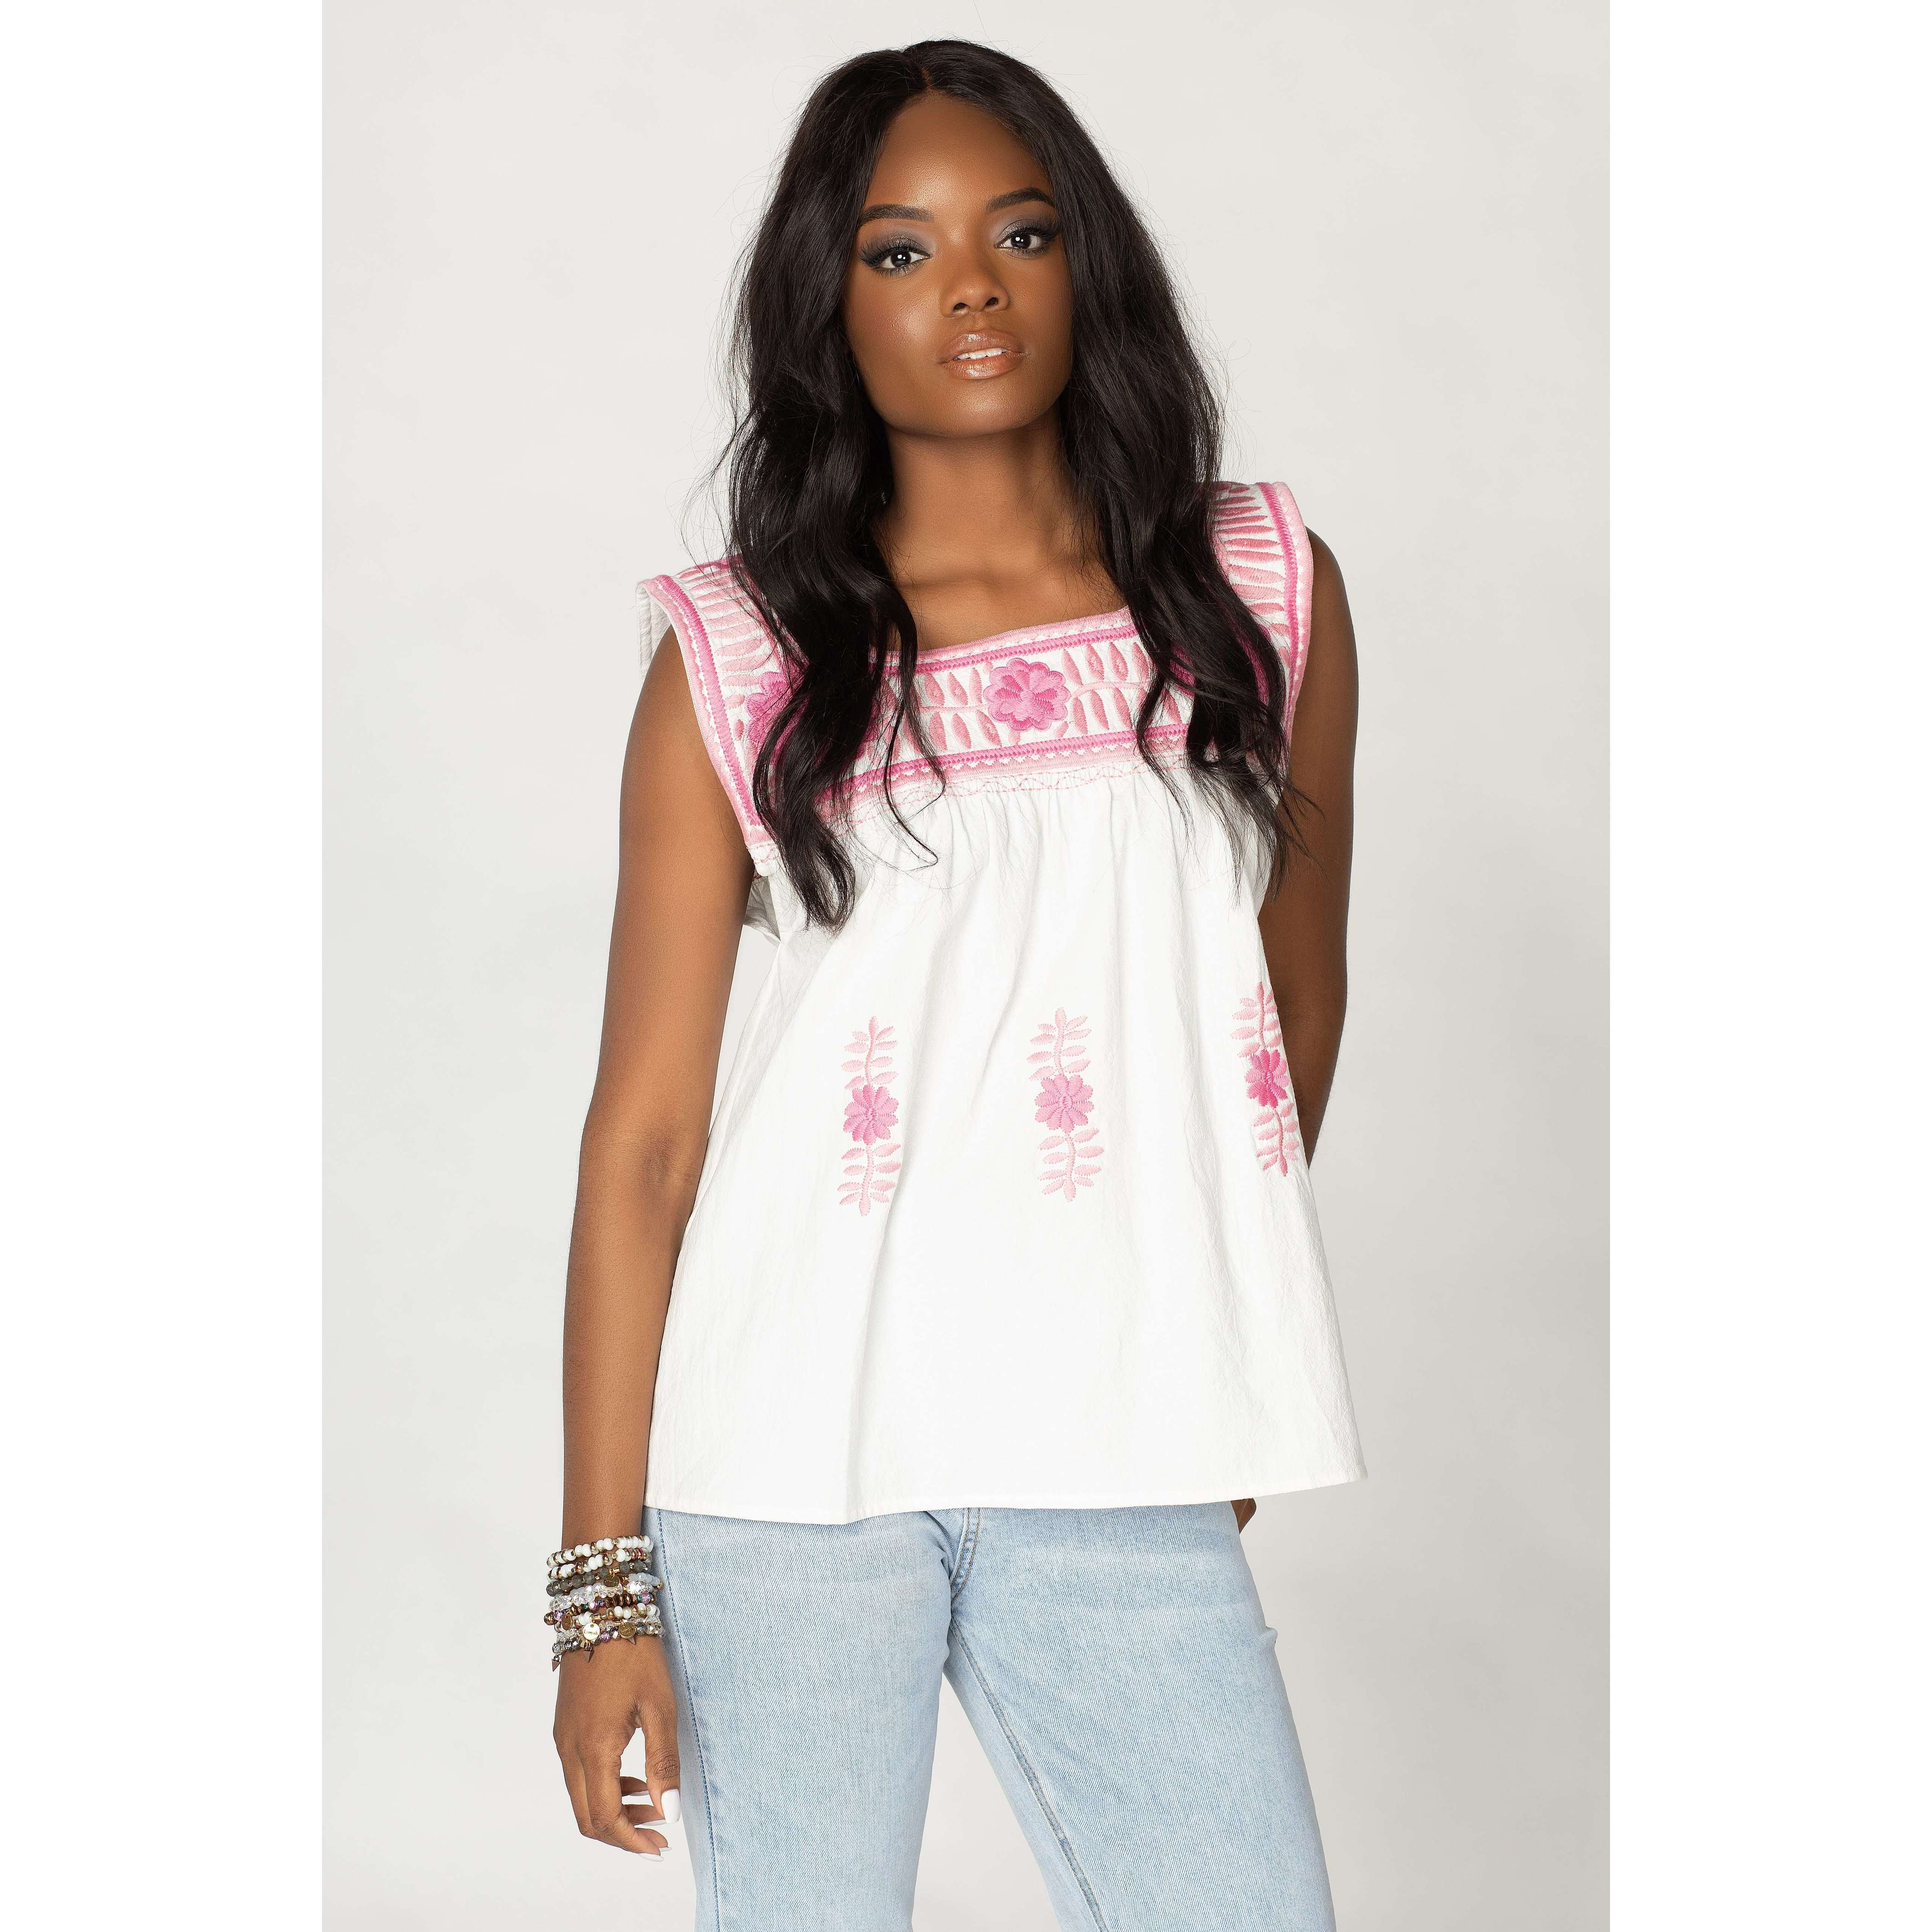 8.28 Boutique:Buddy Love,Buddy Love Maribel Two Tone Pink Top,Top